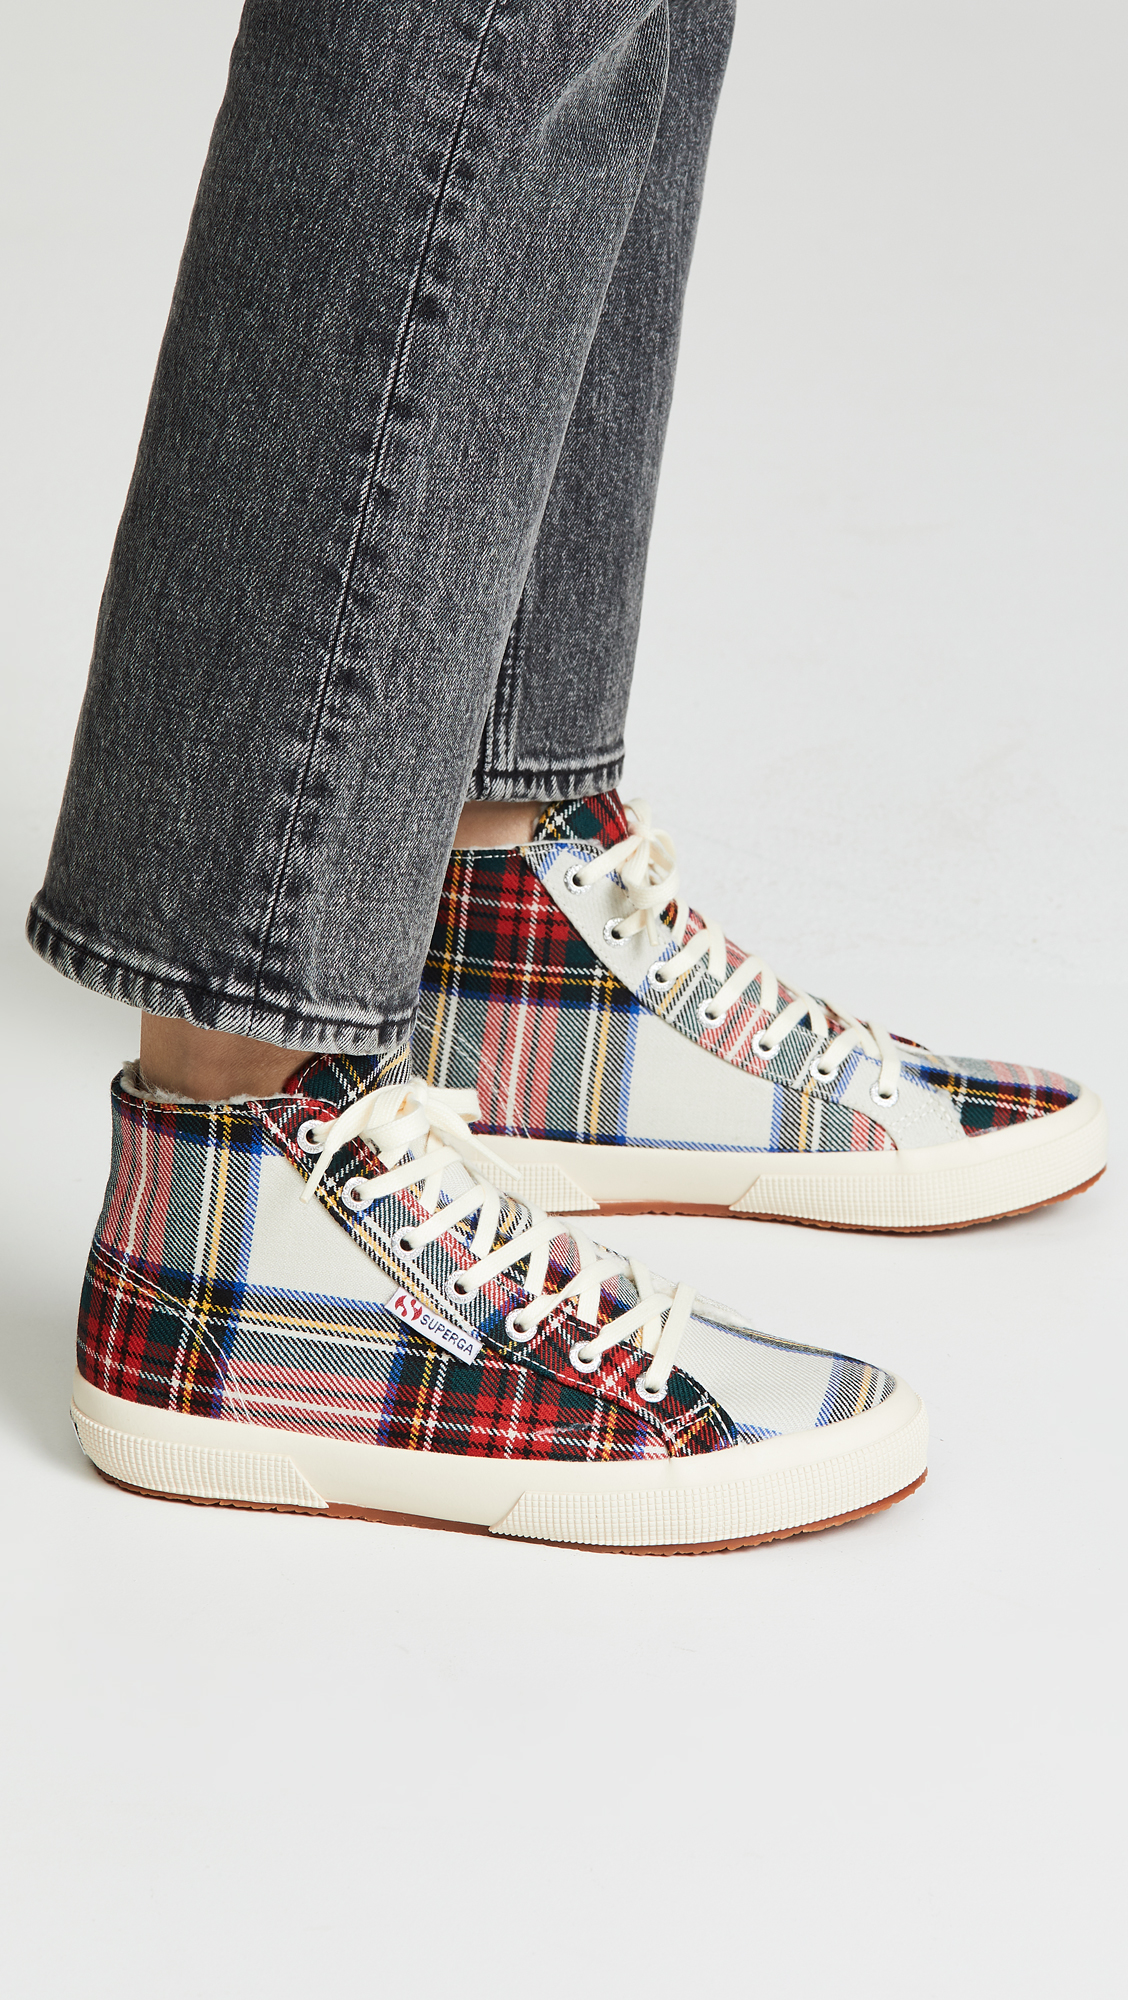 fd656b2a1c08 Superga 2795 Tartan High Top Sneakers